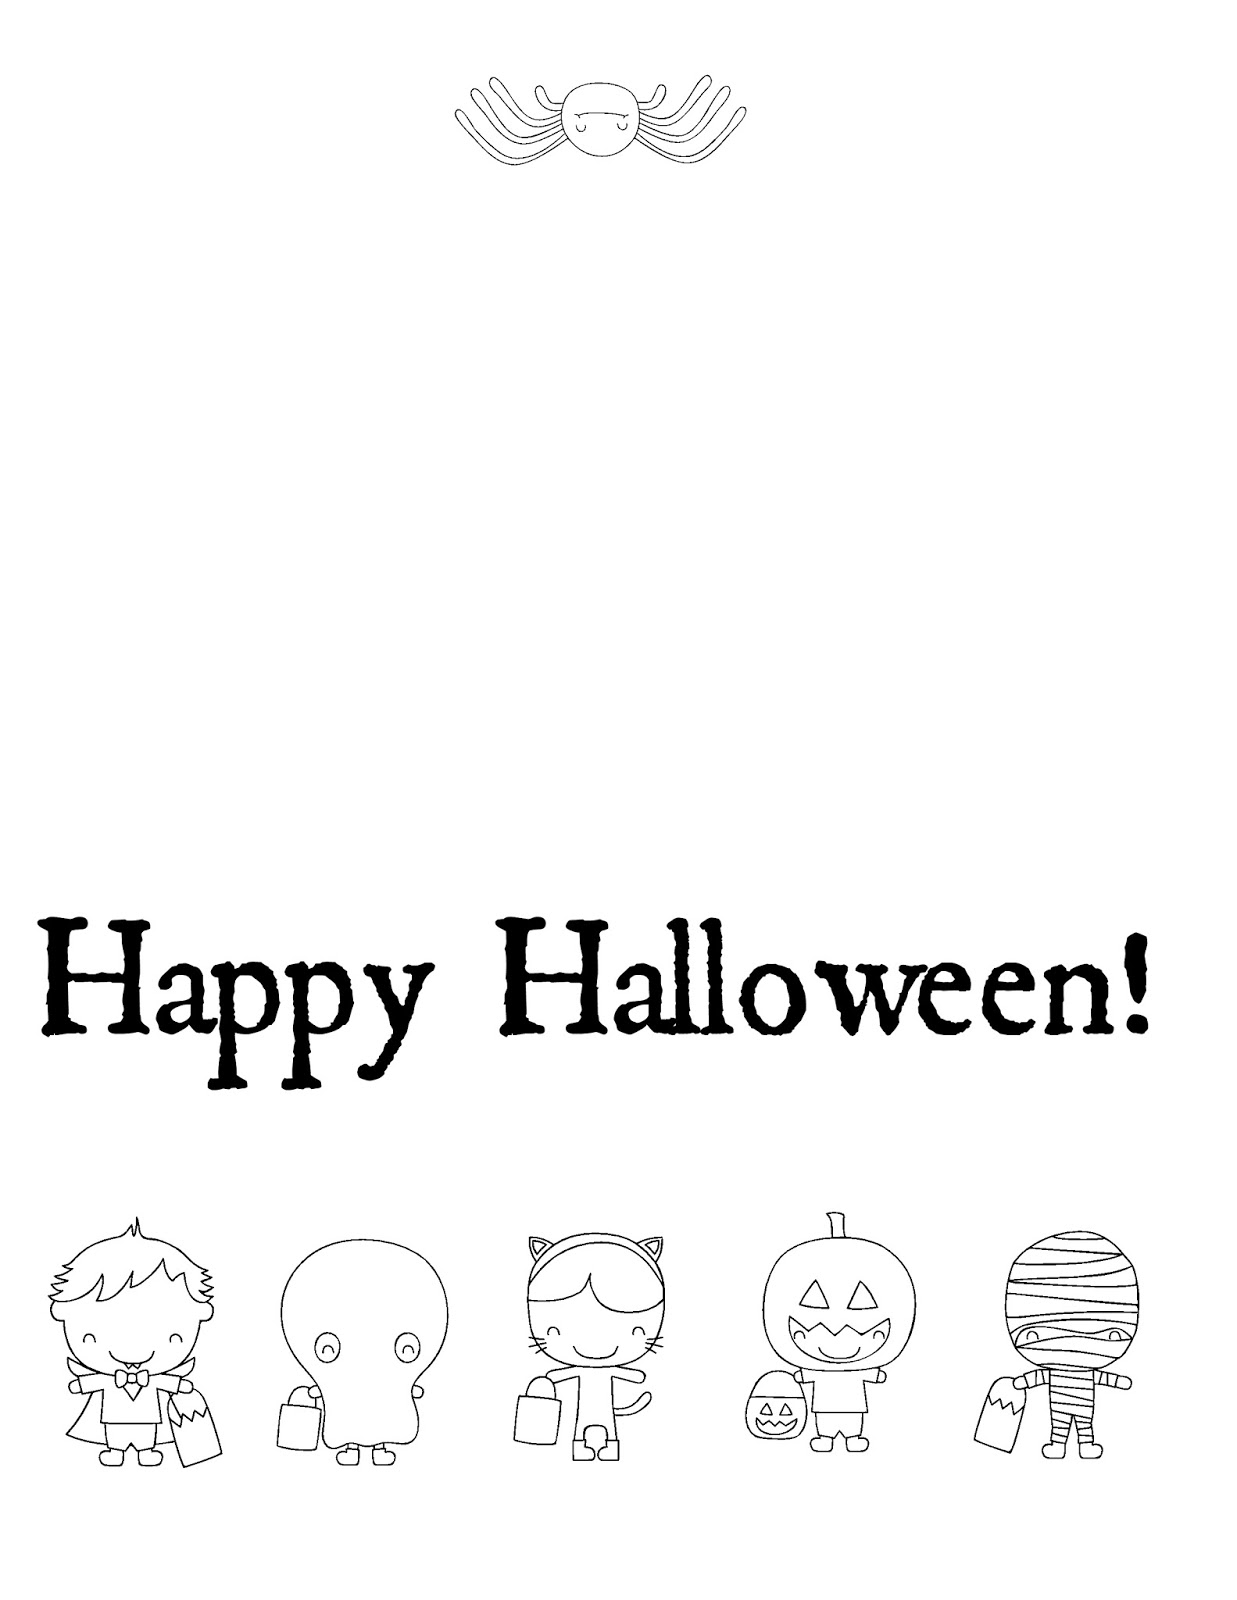 Persnickety image with regard to printable halloween card